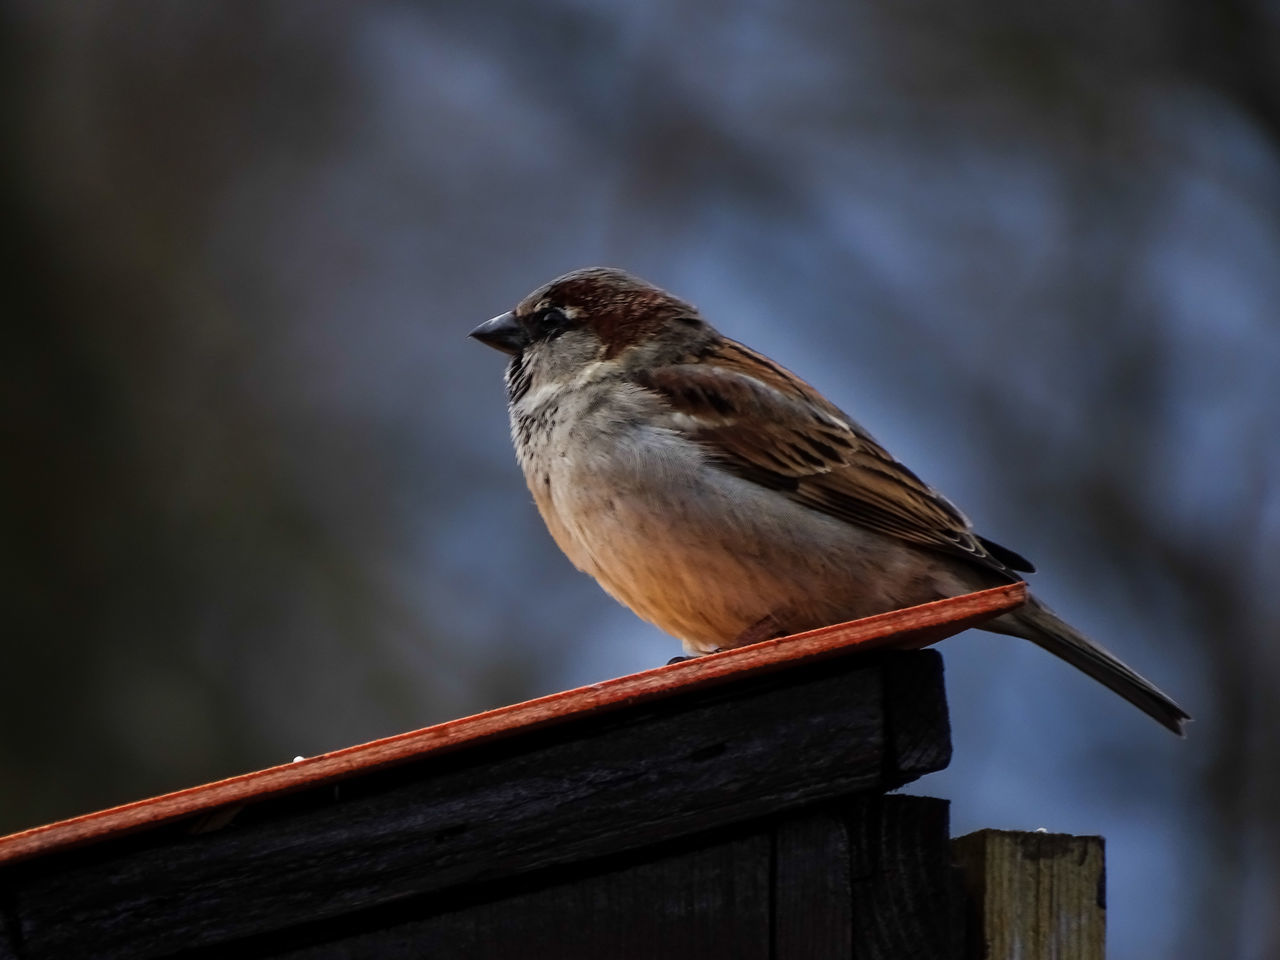 bird, one animal, animals in the wild, animal themes, perching, animal wildlife, focus on foreground, no people, wood - material, nature, outdoors, day, close-up, robin, sparrow